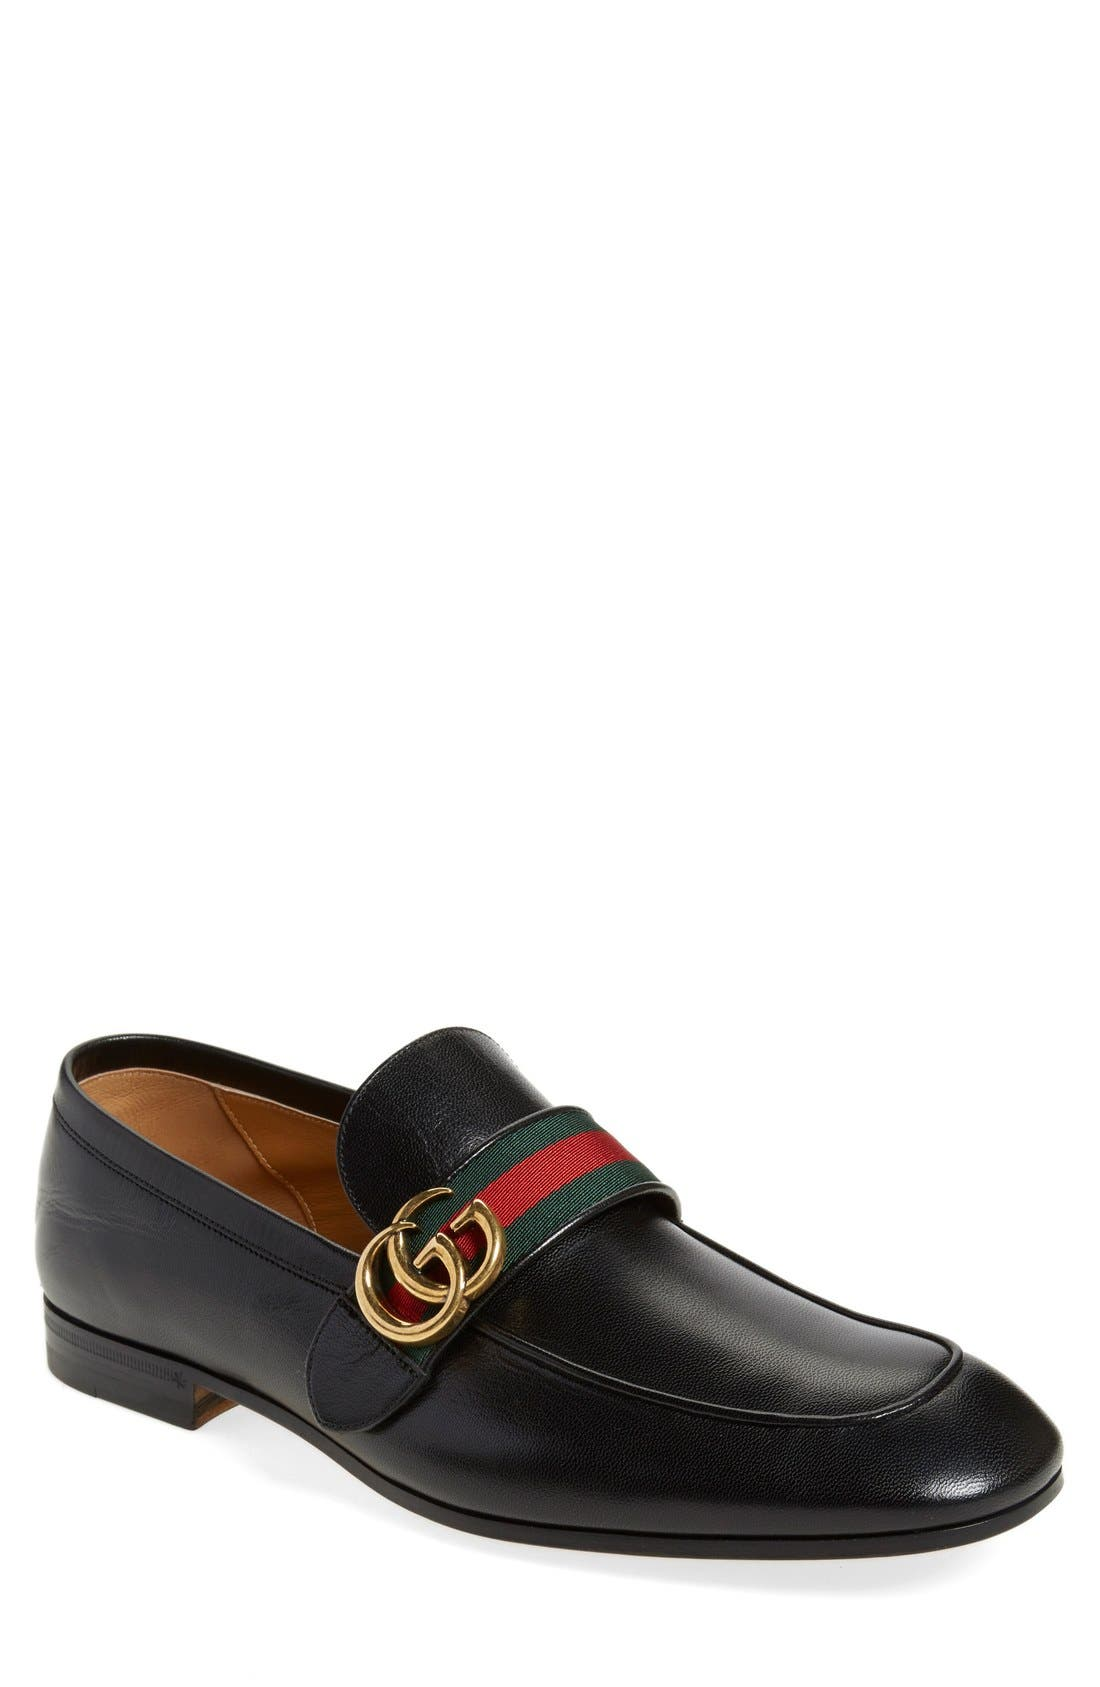 Donnie Bit Loafer,                         Main,                         color, NERO LEATHER